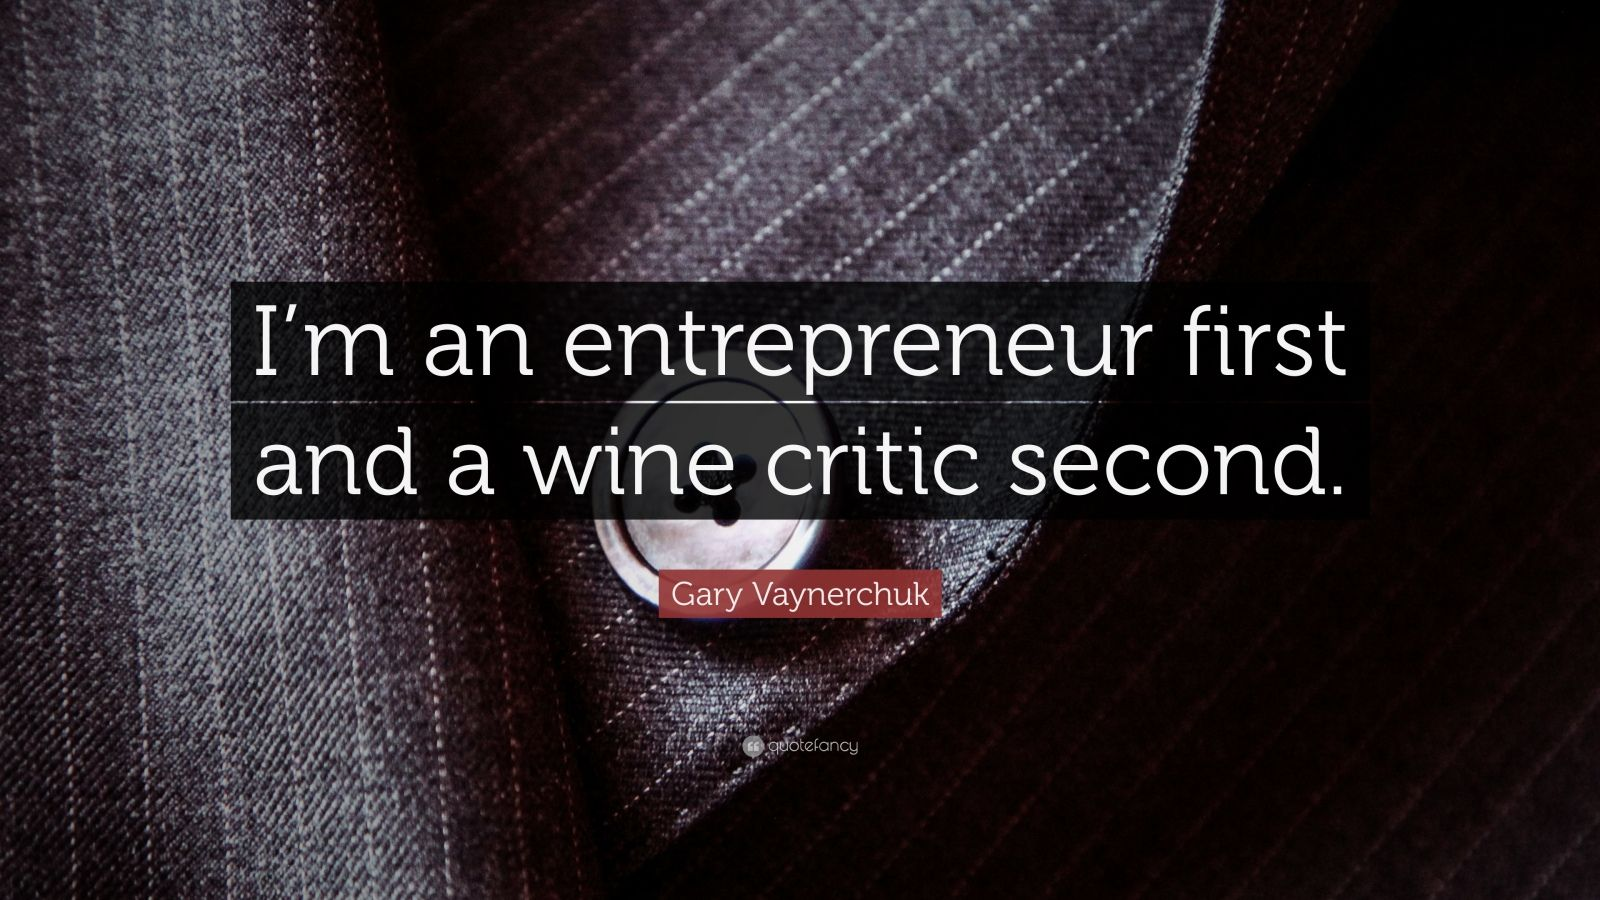 """Gary Vaynerchuk Quote: """"I'm an entrepreneur first and a wine critic second."""""""